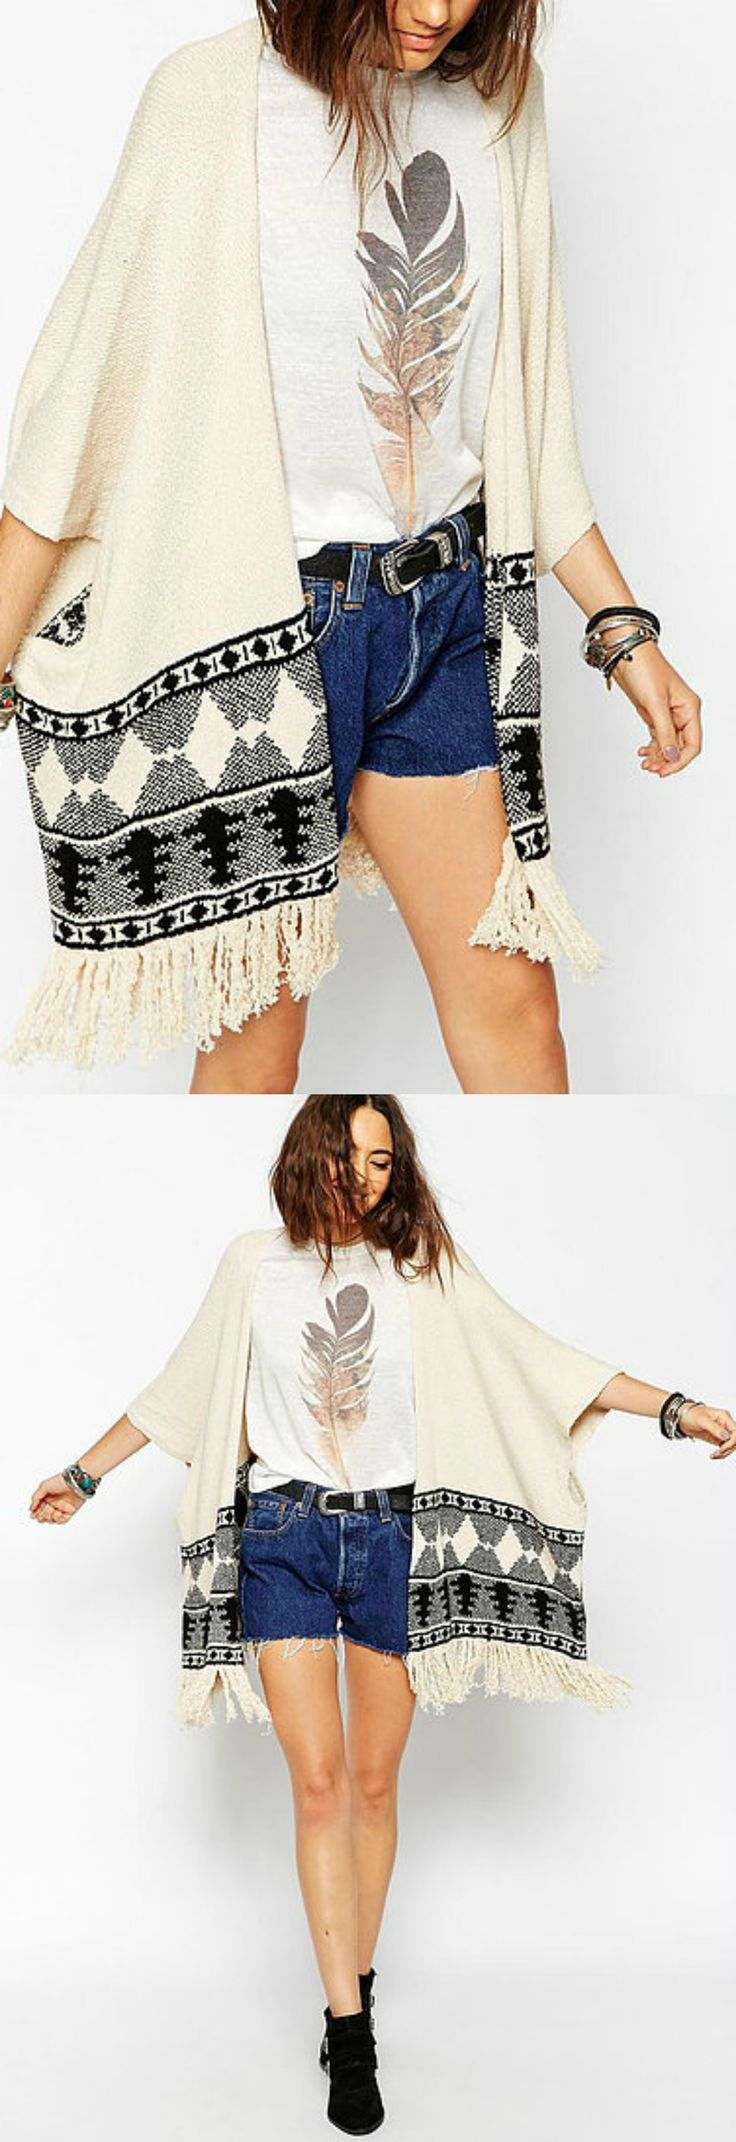 A Boho Ethnic Kimono is now available at $36 from Pasaboho. This Boho Coverup exhibit unique tribal patterns. ❤️ Perfect for a casual day outfit. In Love with boho style and embroidery stitches. Free Spirit hippie girls sharing woman outfit ideas. bohemian clothes, cute dresses and skirts. Fashion trend and styles from hippie chic, modern vintage, gypsy style, boho chic, hmong ethnic, street style, geometric and floral outfits.